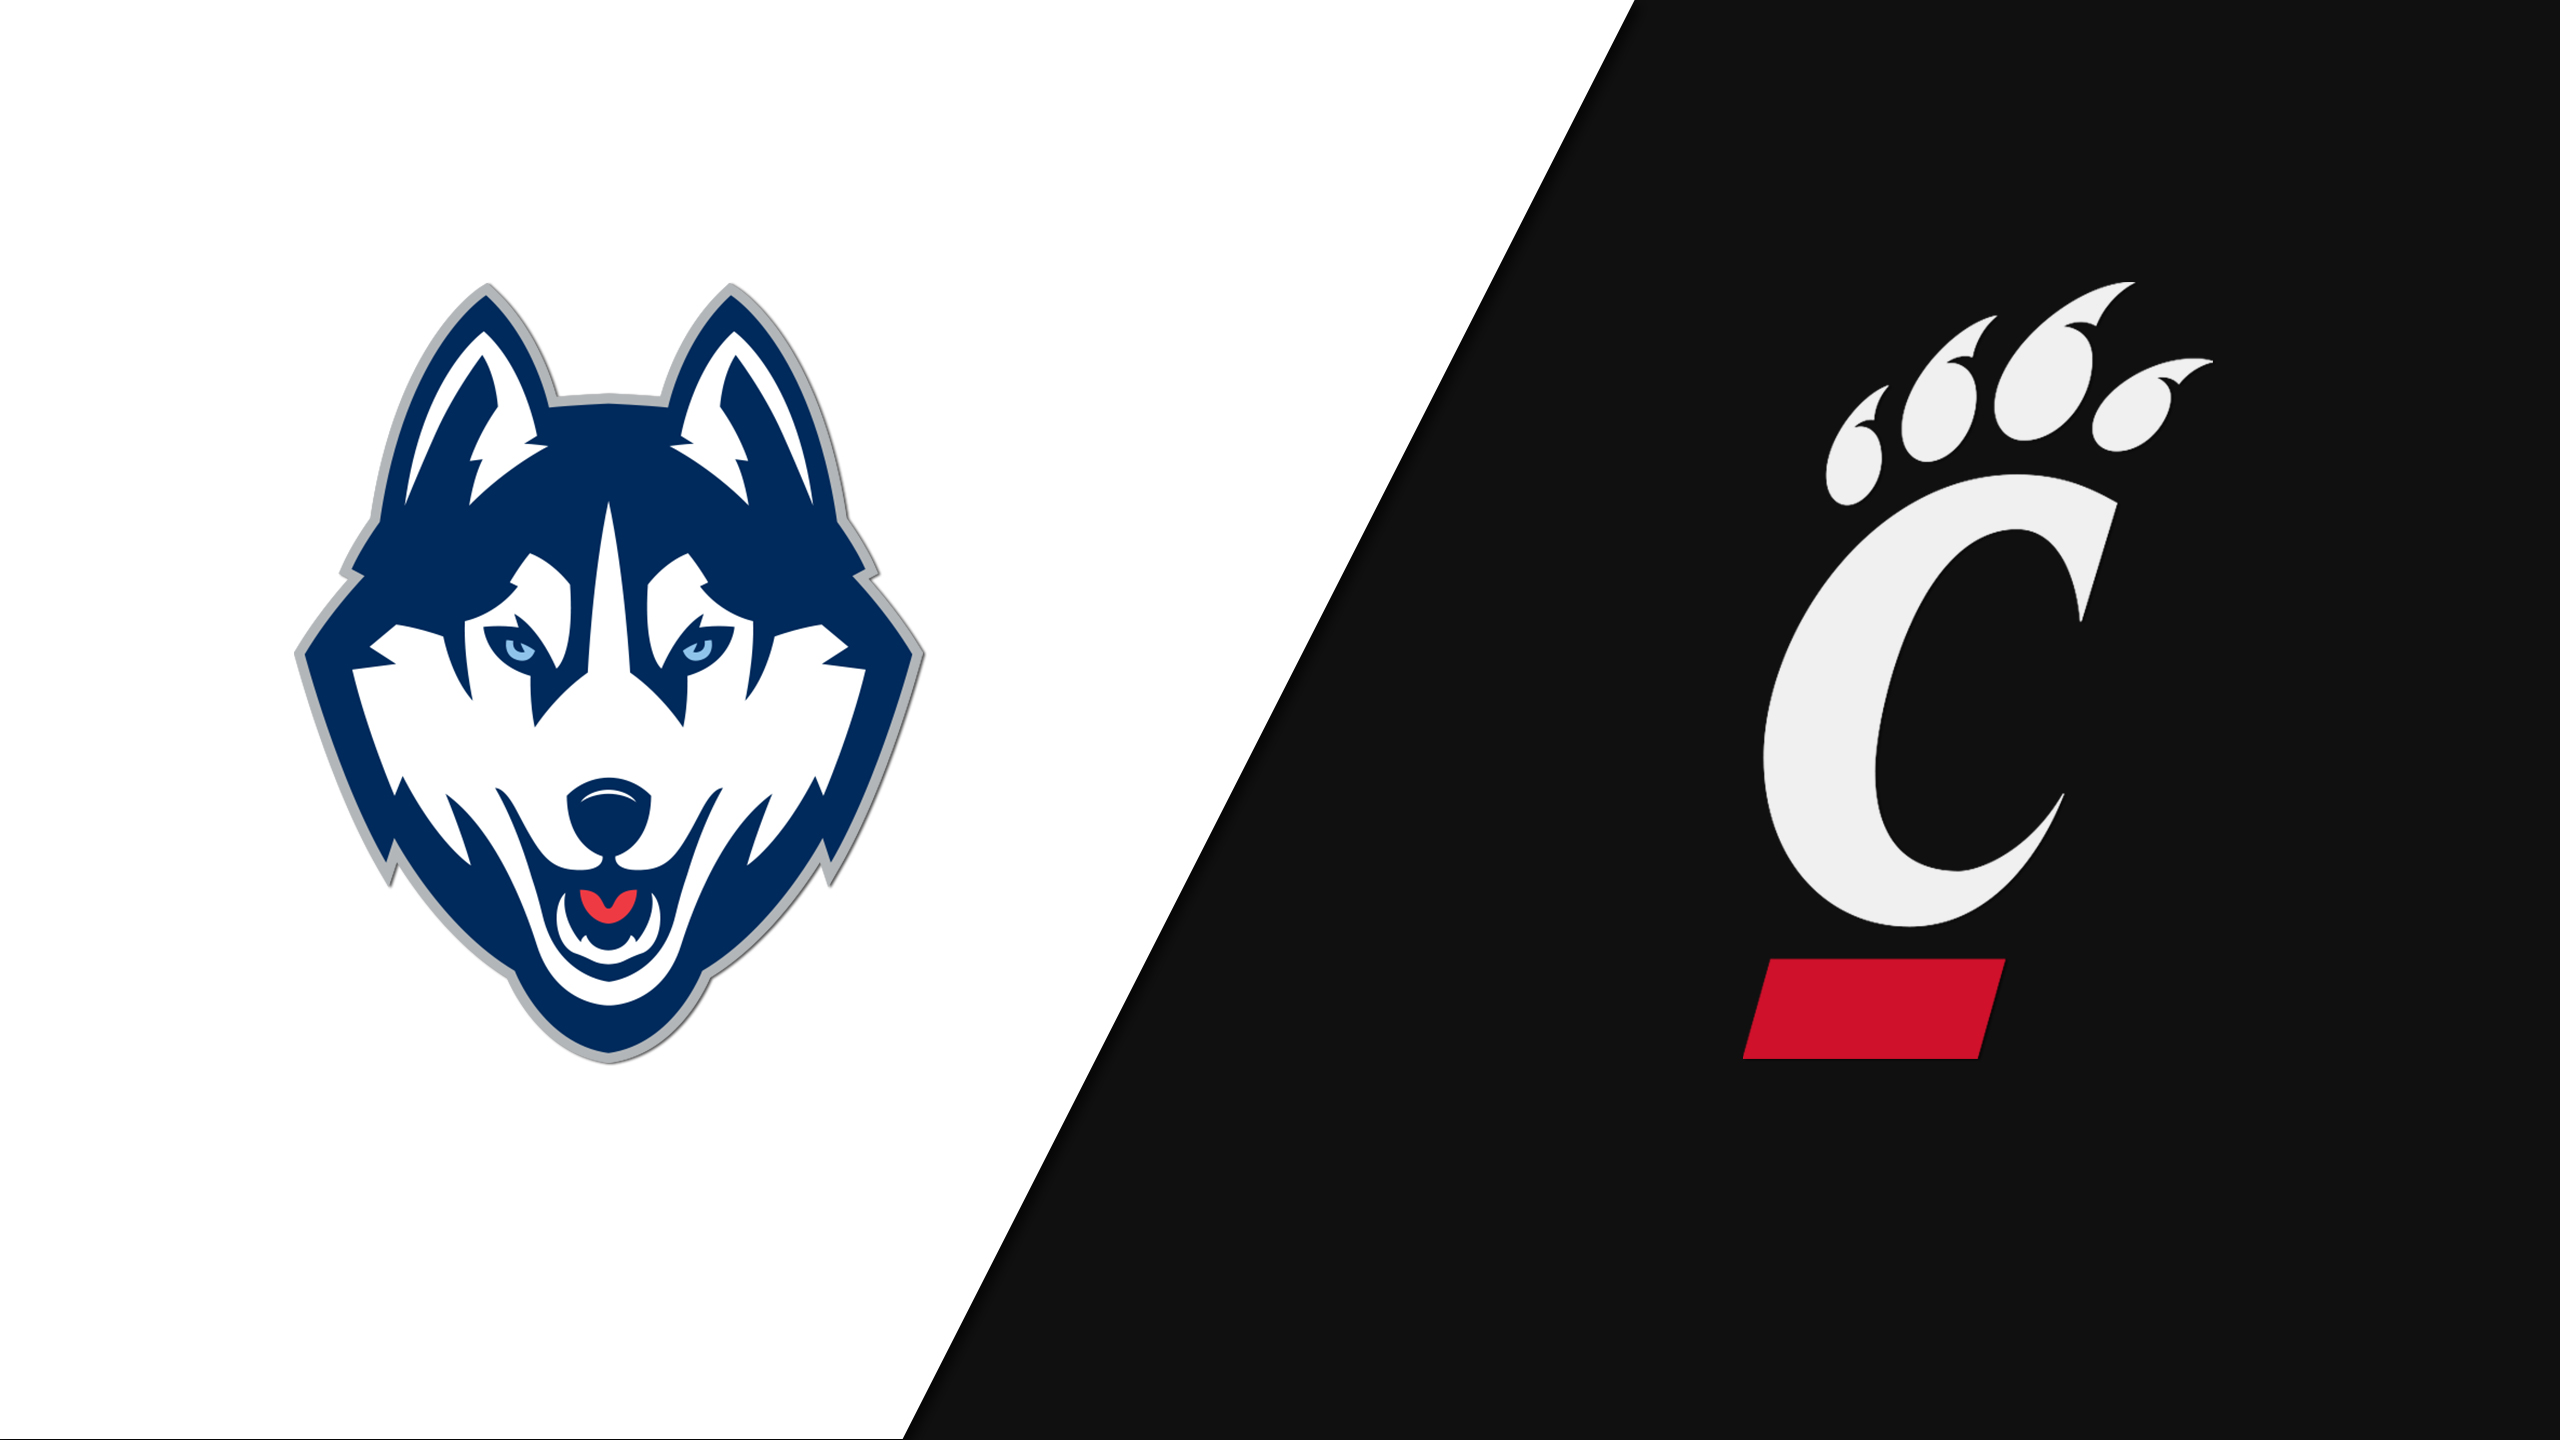 Connecticut vs. Cincinnati (Championship)